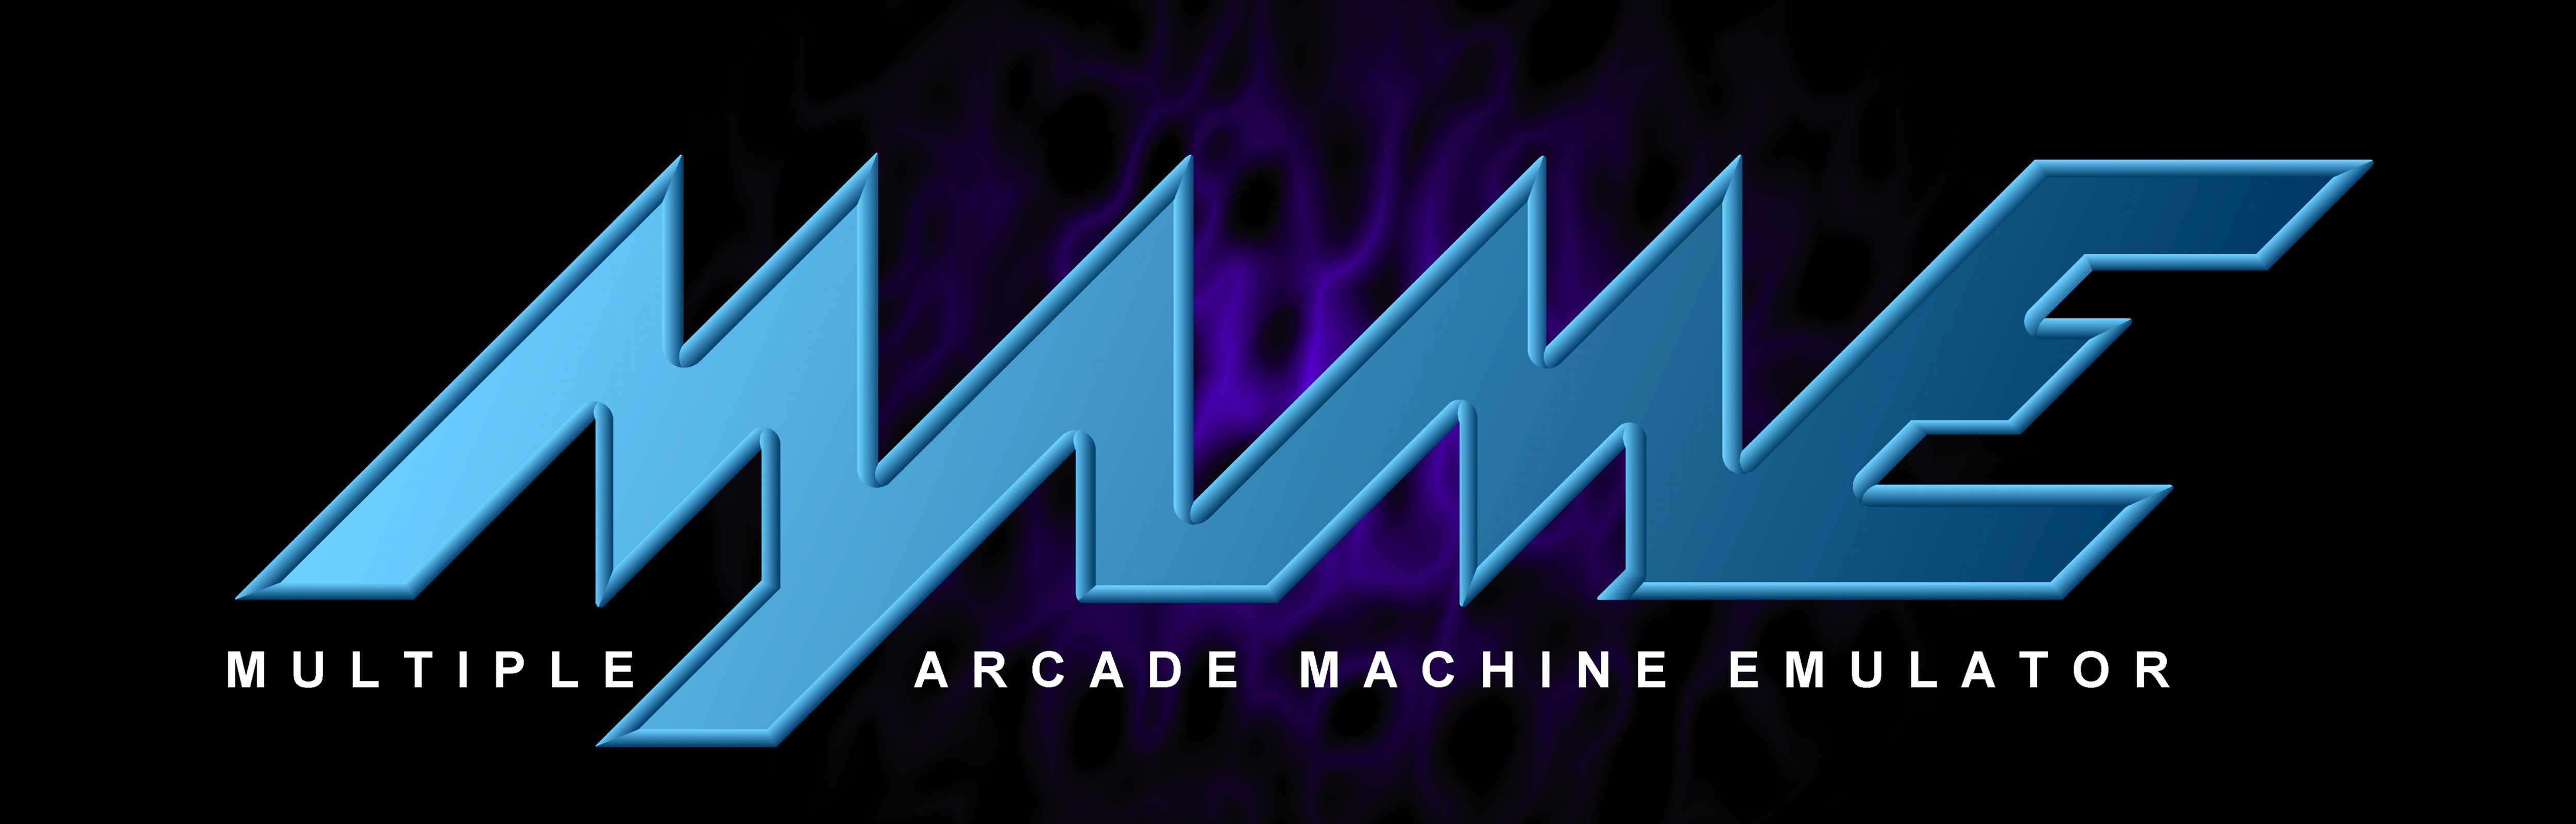 How To Play Mame Multiple Arcade Machine Emulator Games